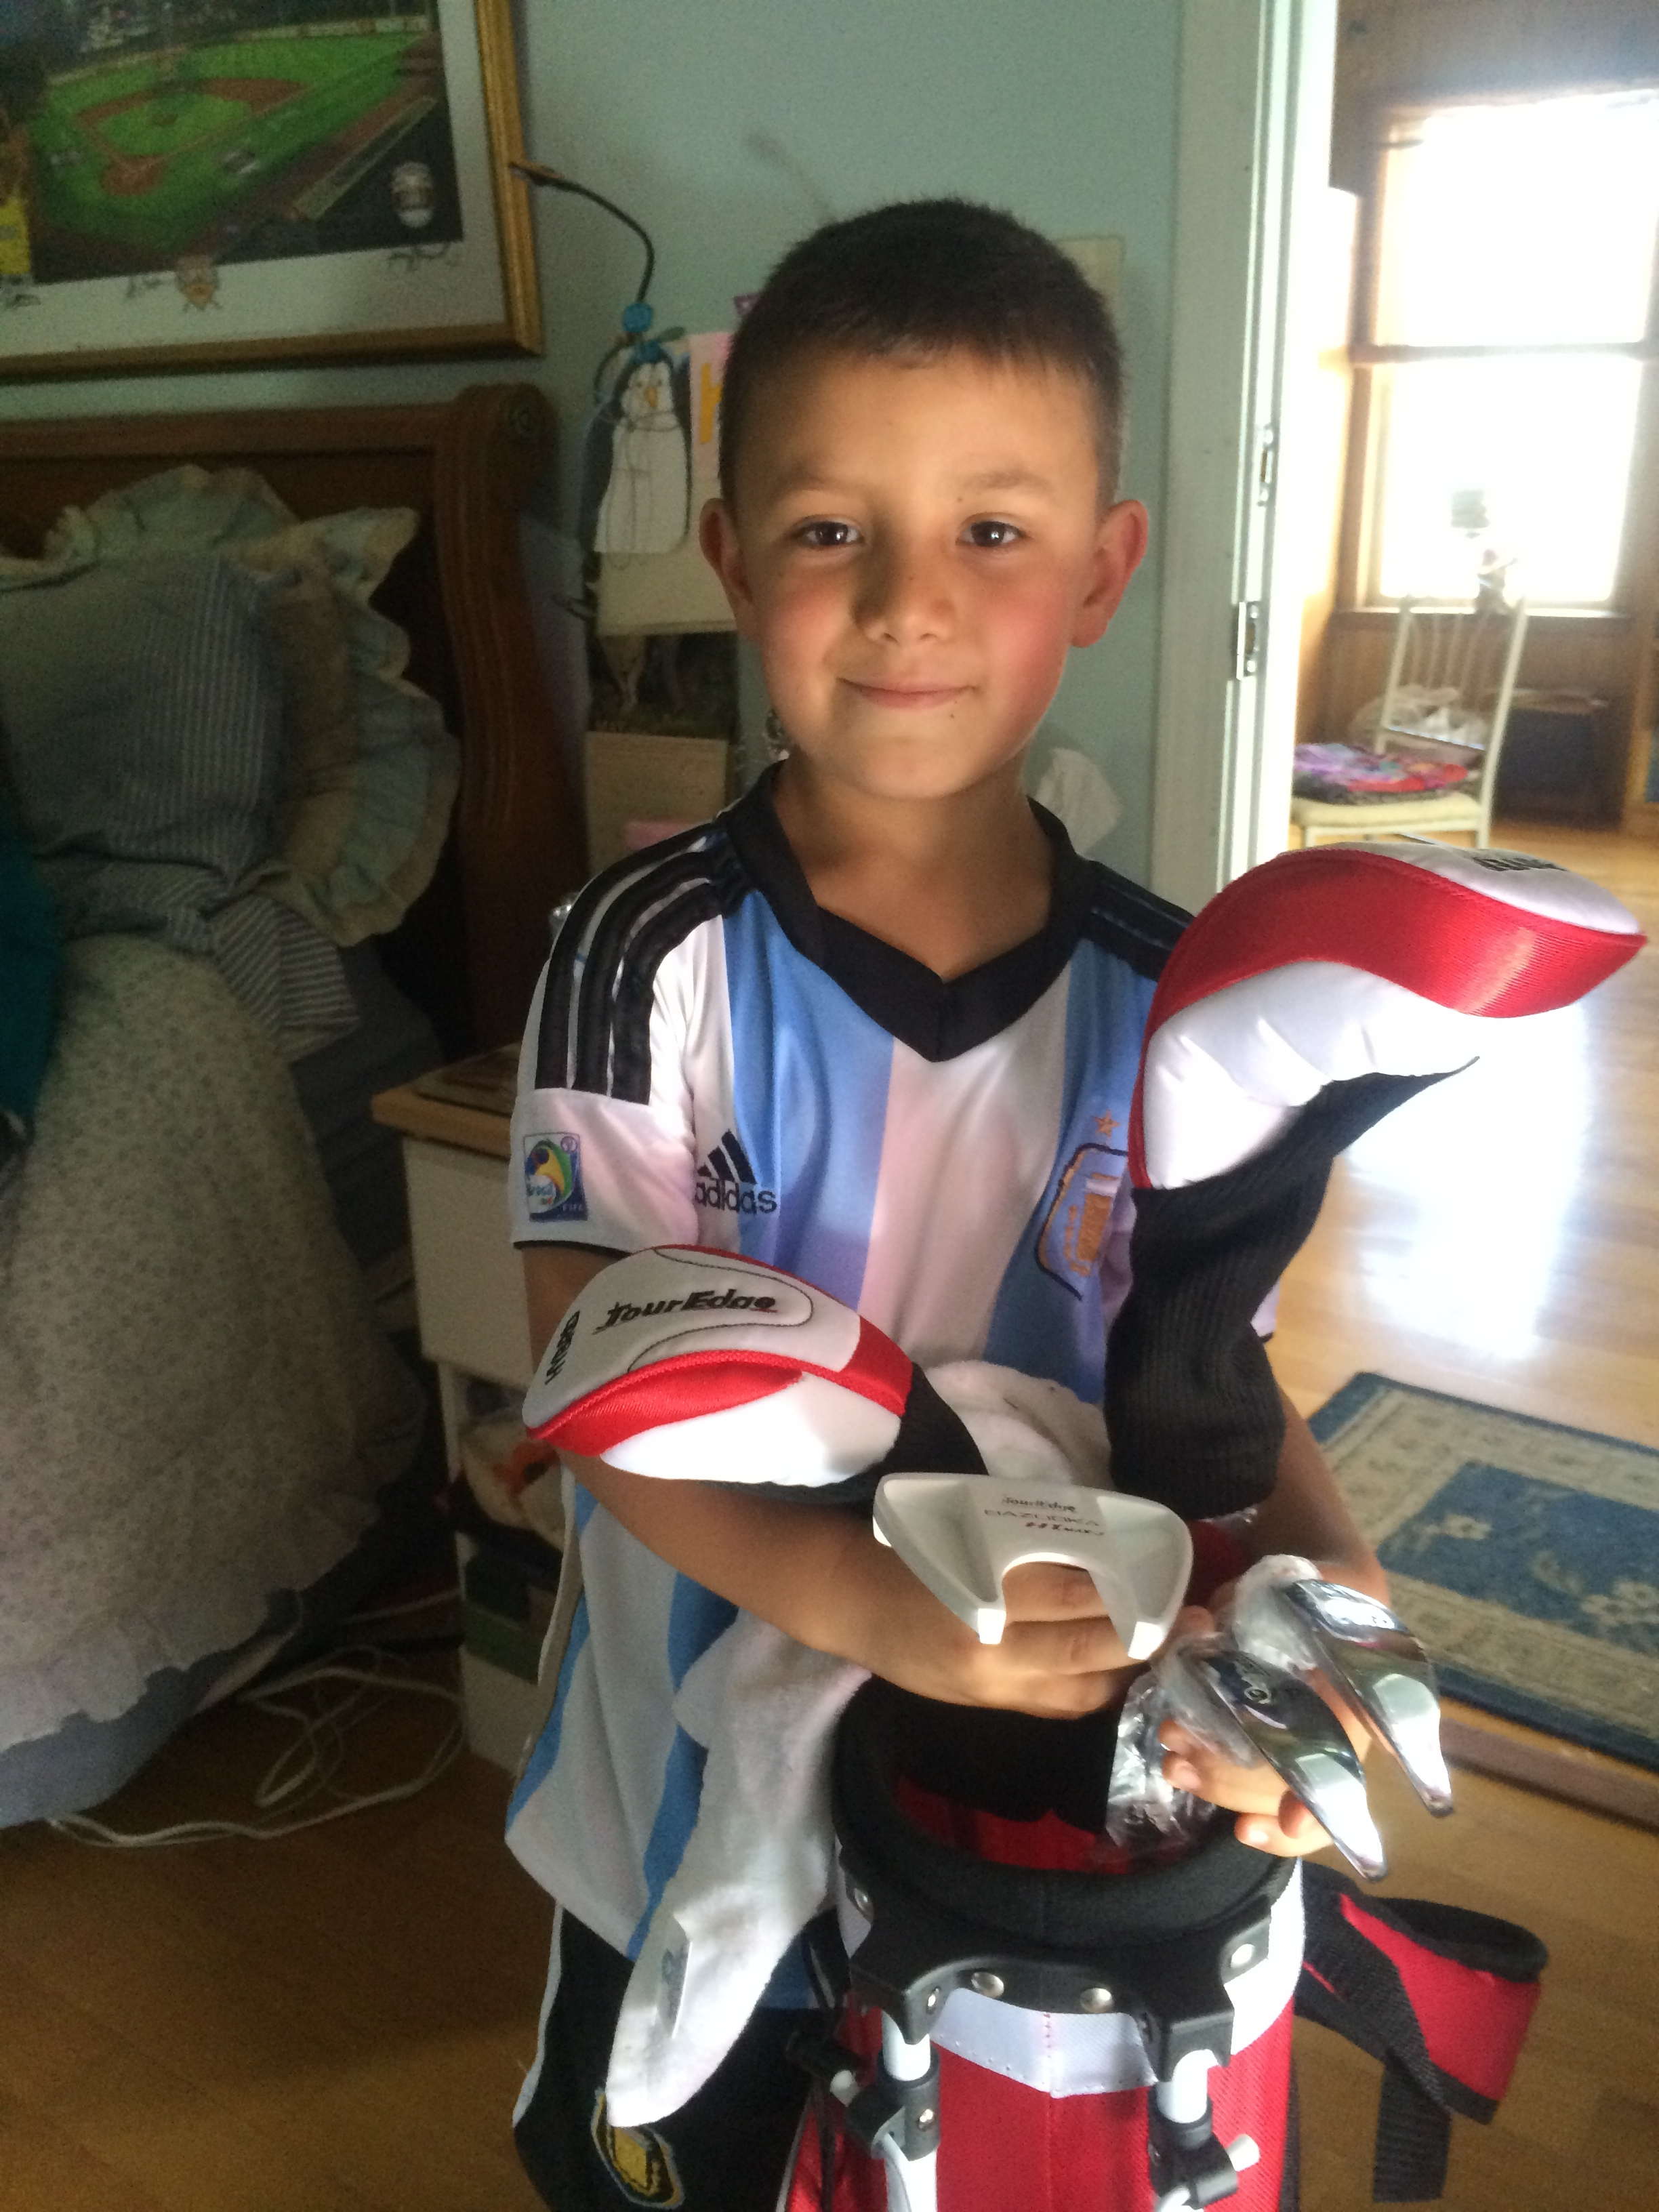 My grandson, Michael, with new golf clubs